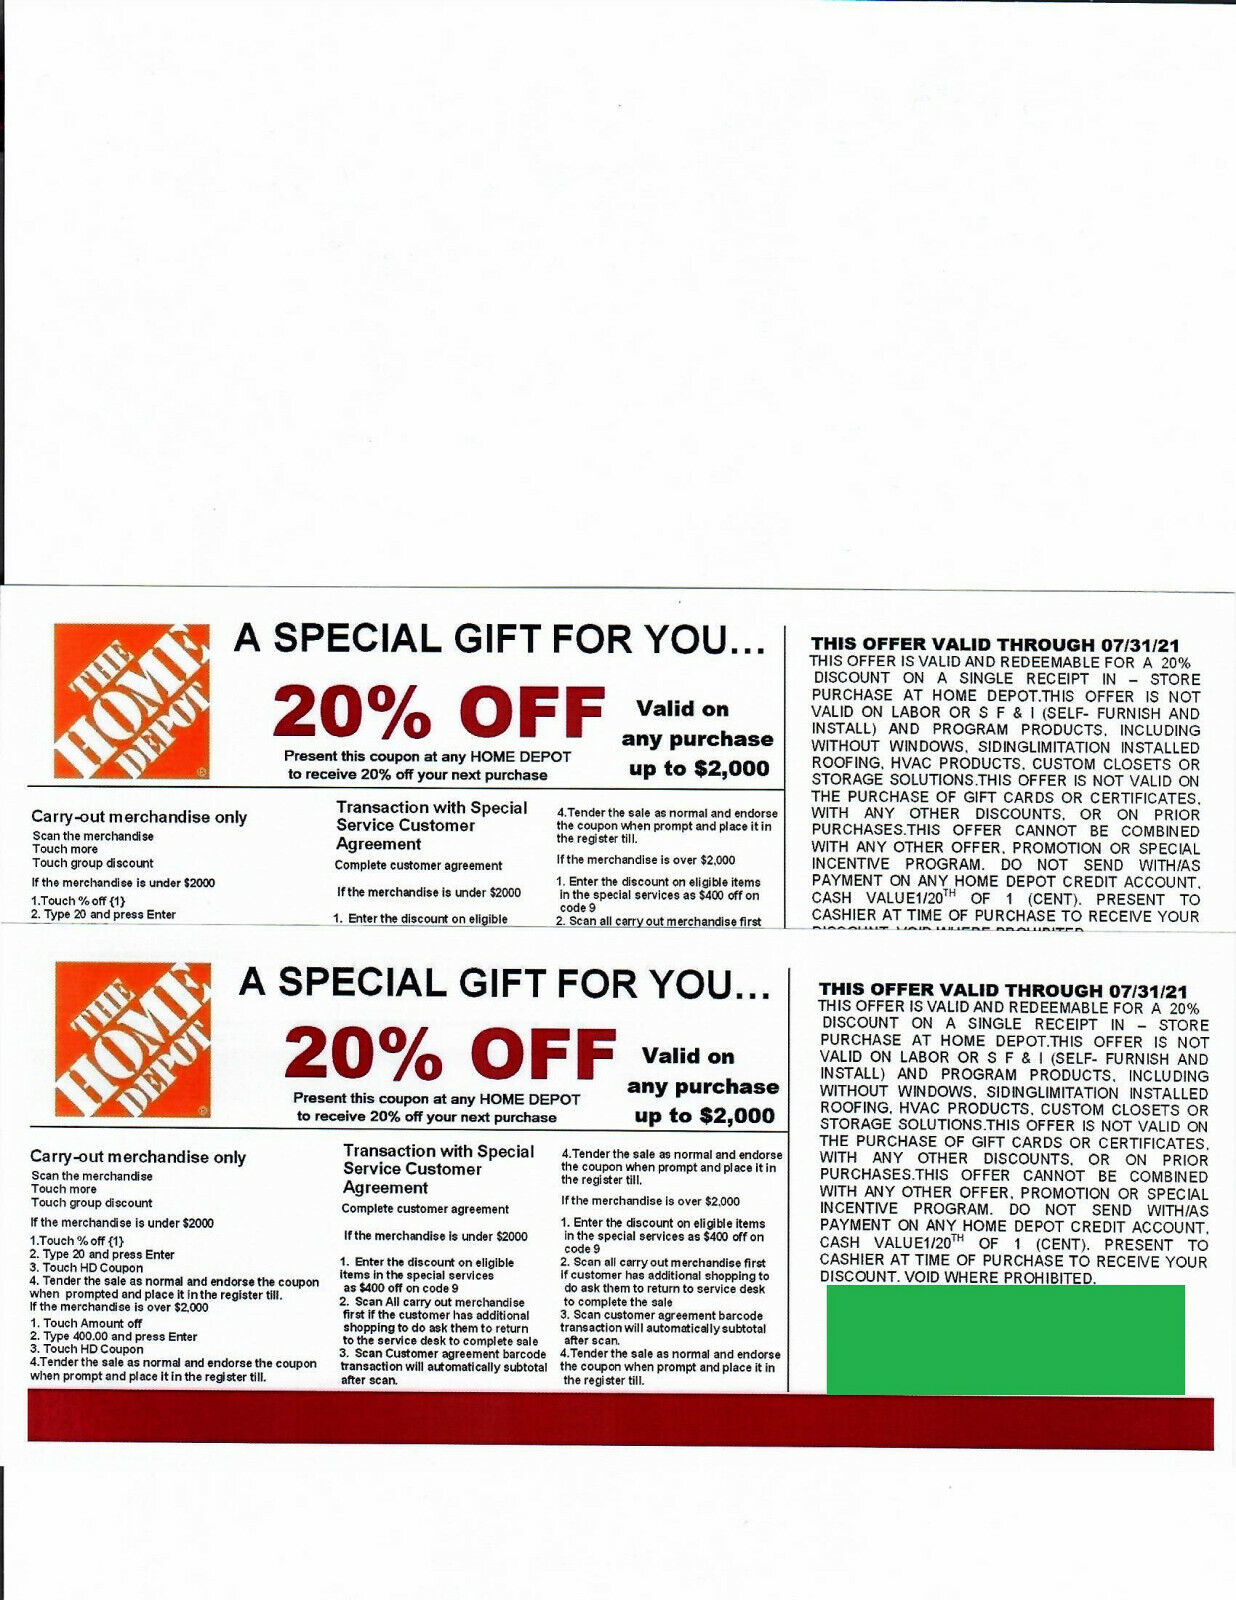 2 20 OFF HOME DEPOT Competitors Coupon At Lowe s Expires 7/31/21 - $10.00